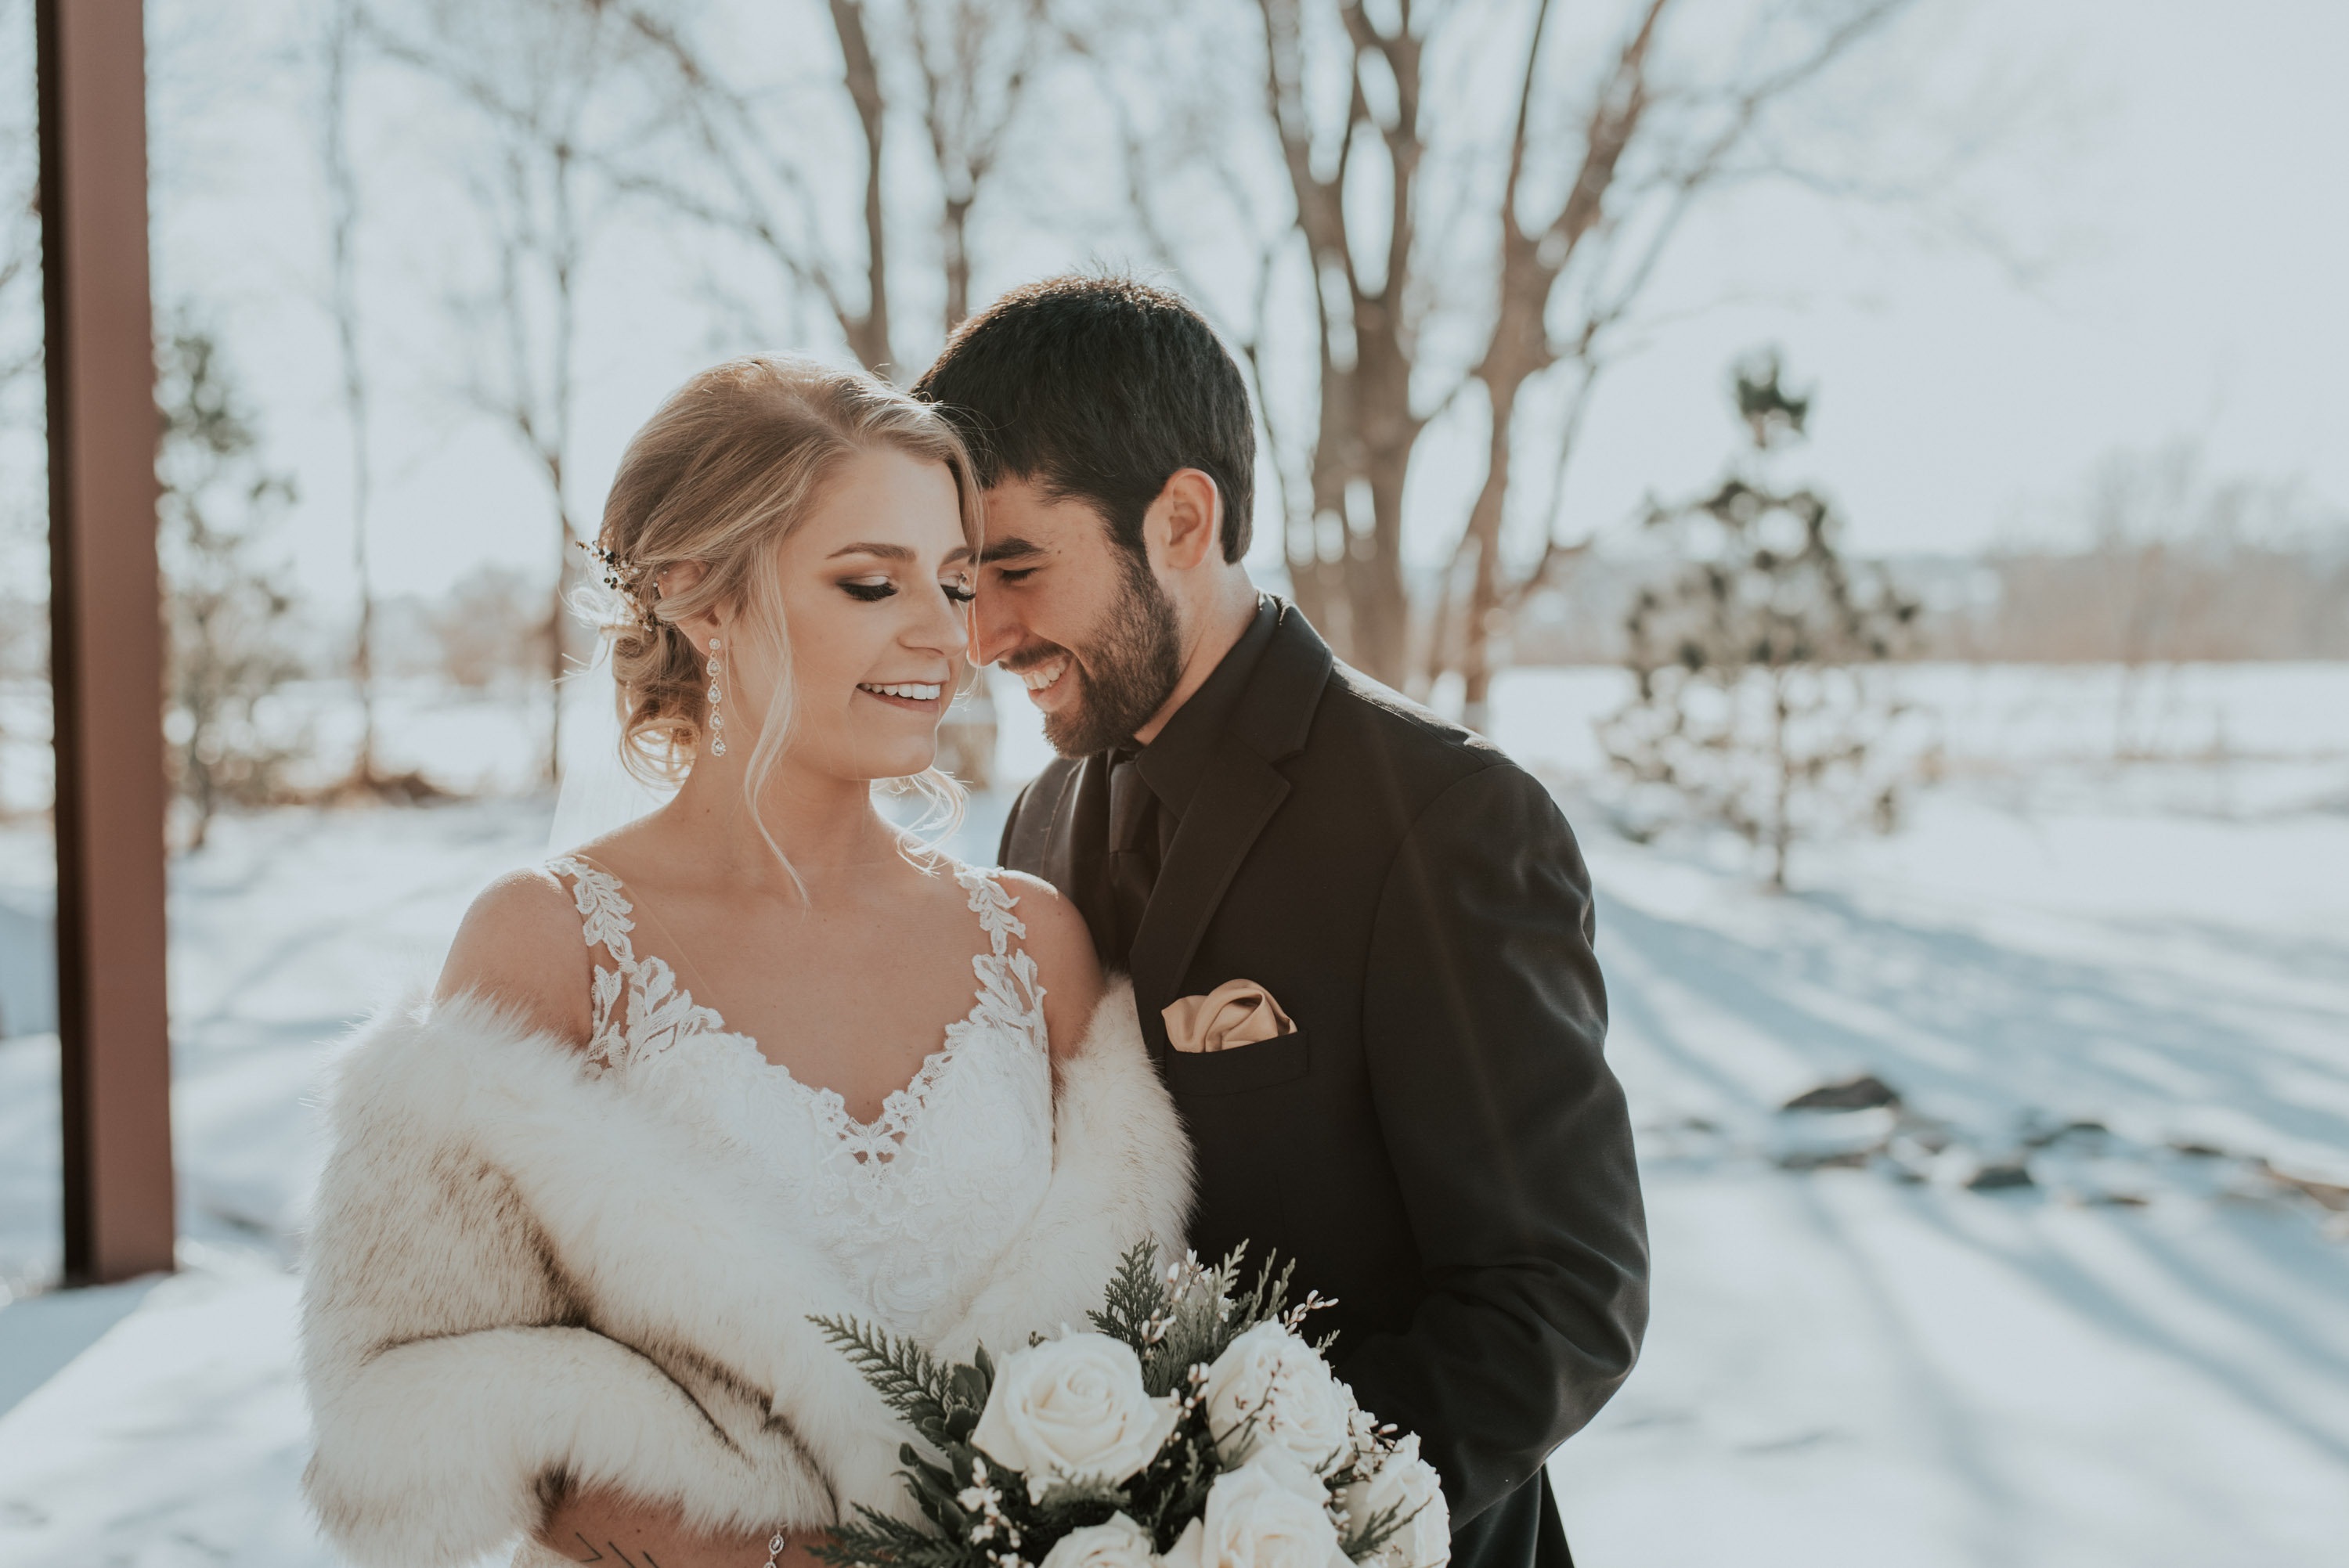 morgan zach omaha nebraska wedding midwest photographer winter snowy wedding